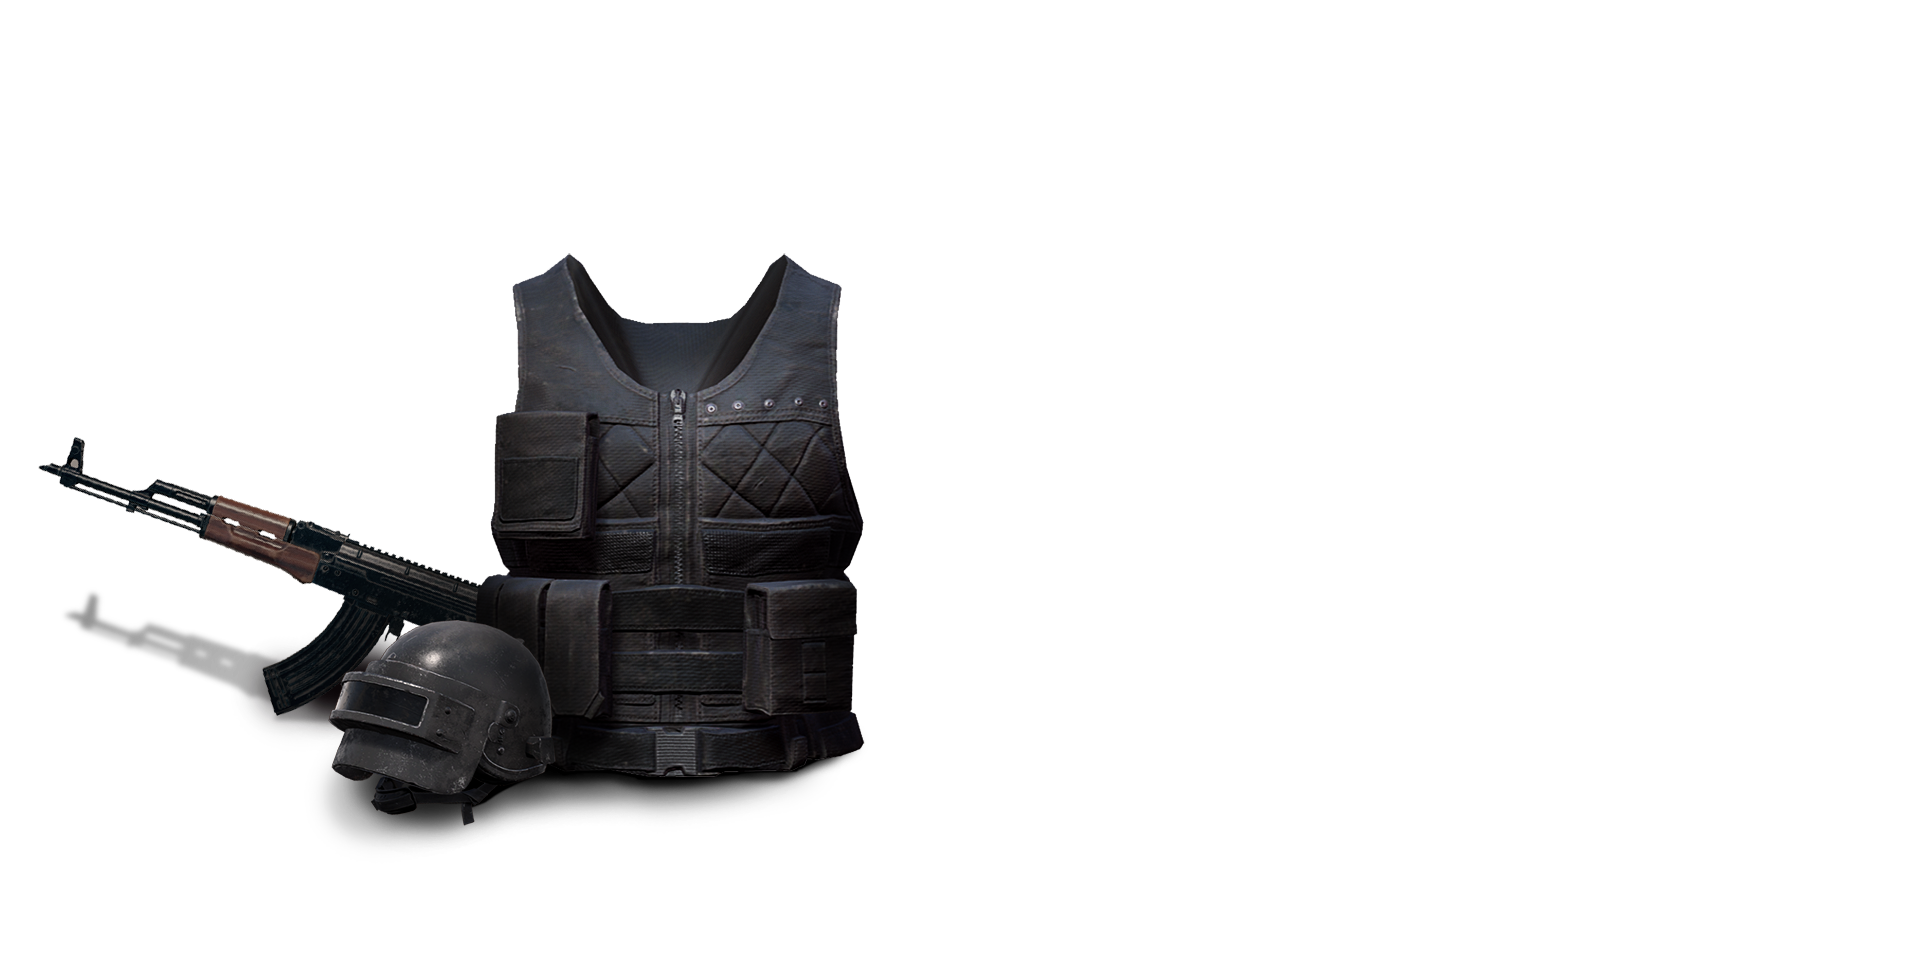 Playerunknown s battlegrounds images. Pubg player png vector library library